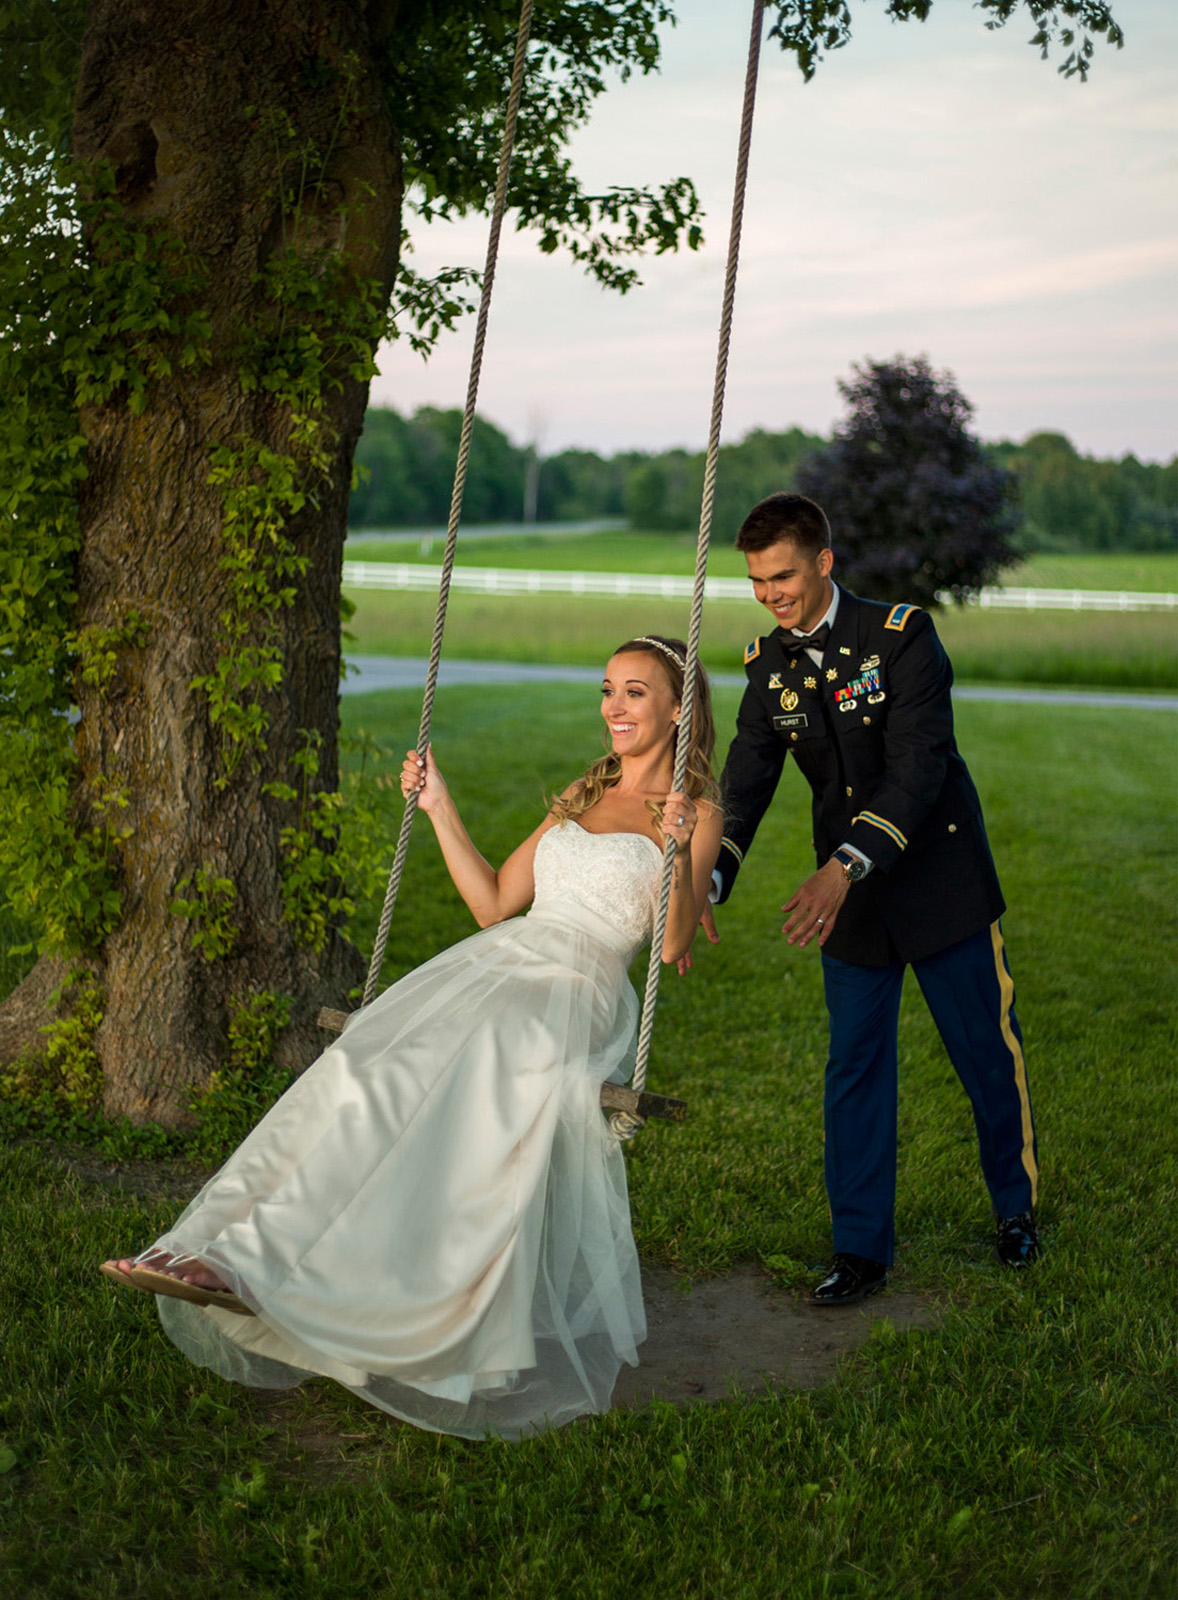 A Wedding at Cobblestone Farm by Photographer Thomas Kachadurian